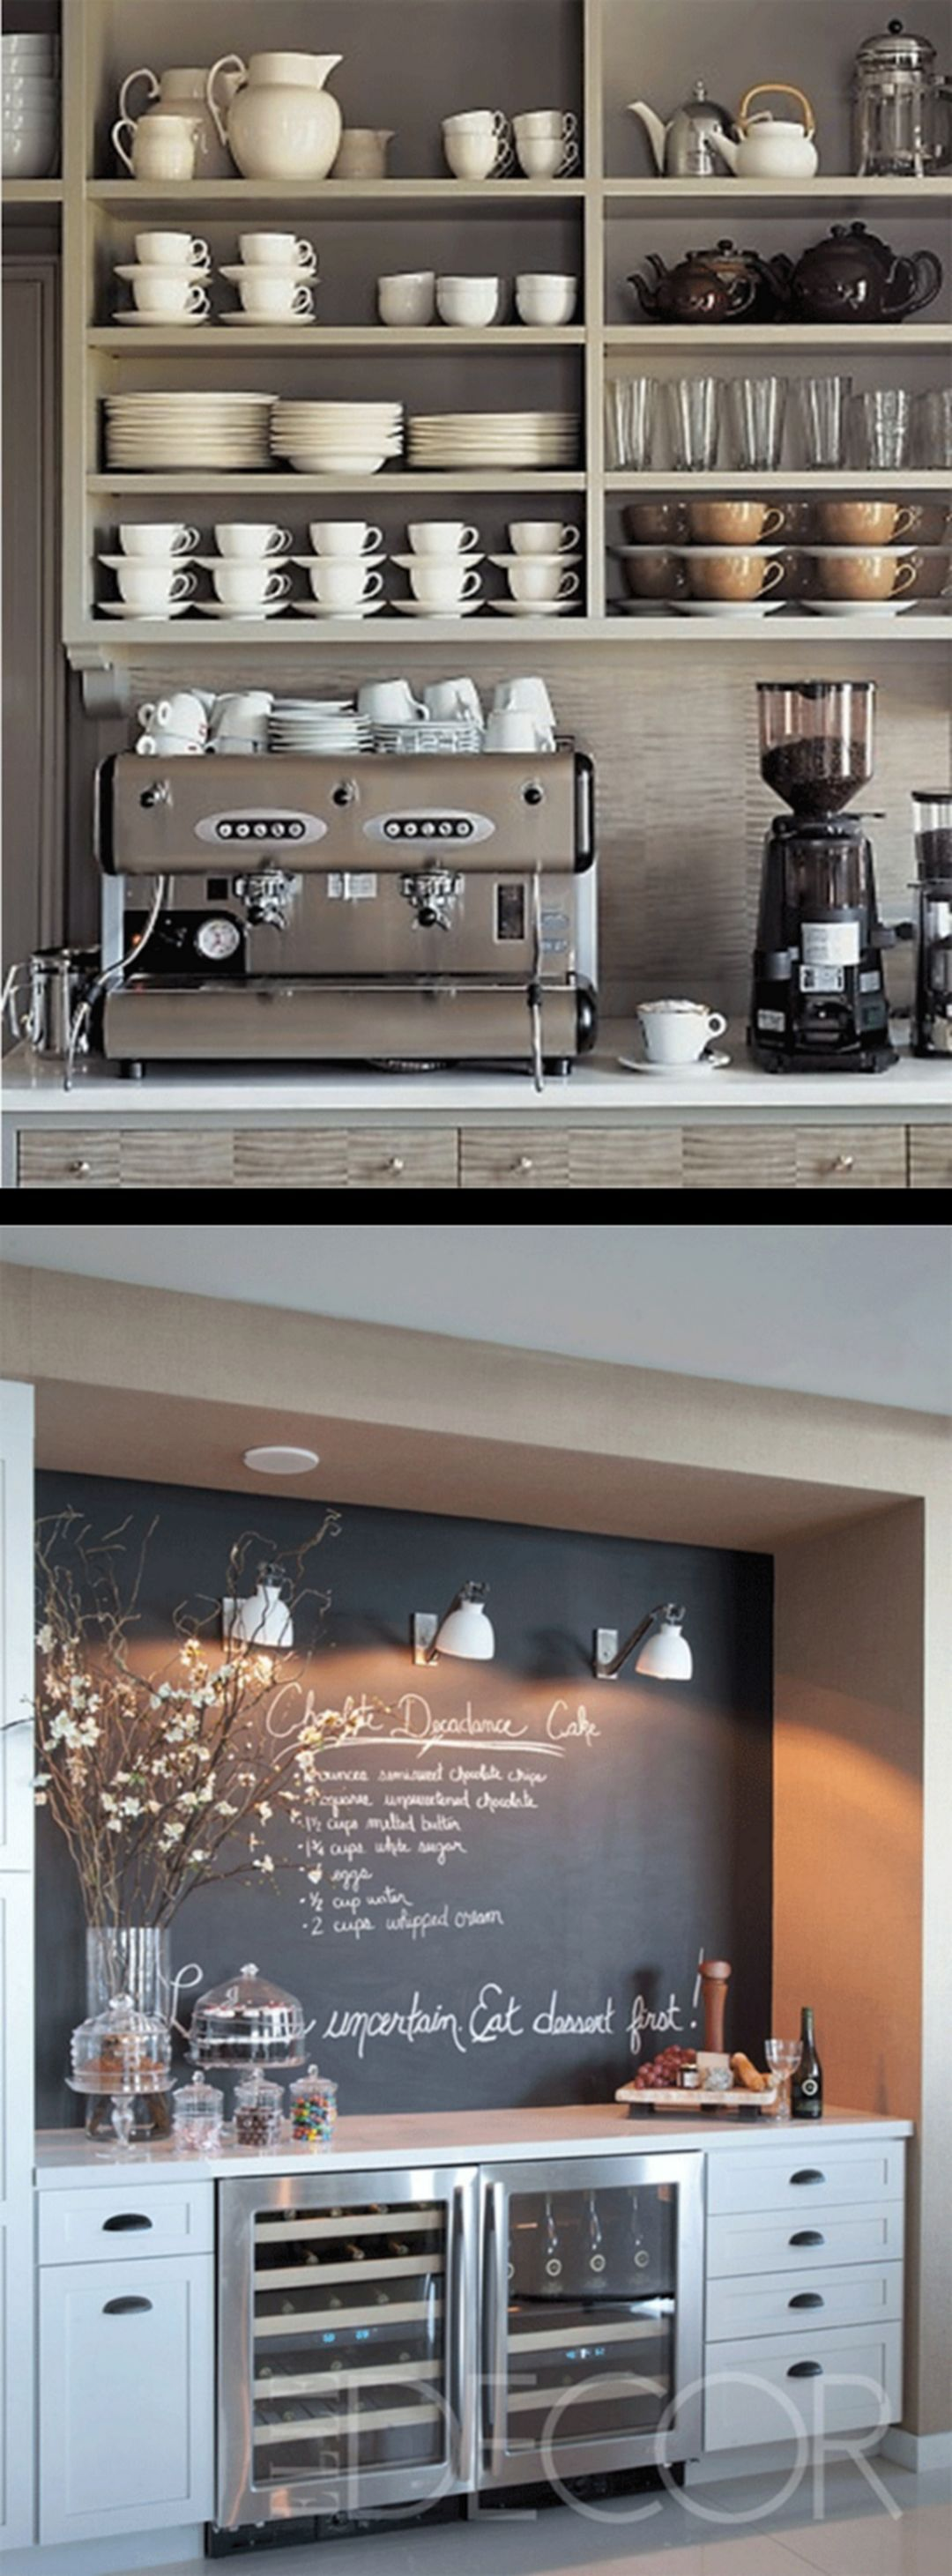 75+ Elegant Home Coffee Bar Design And Decor Ideas You Must Have In Your  House